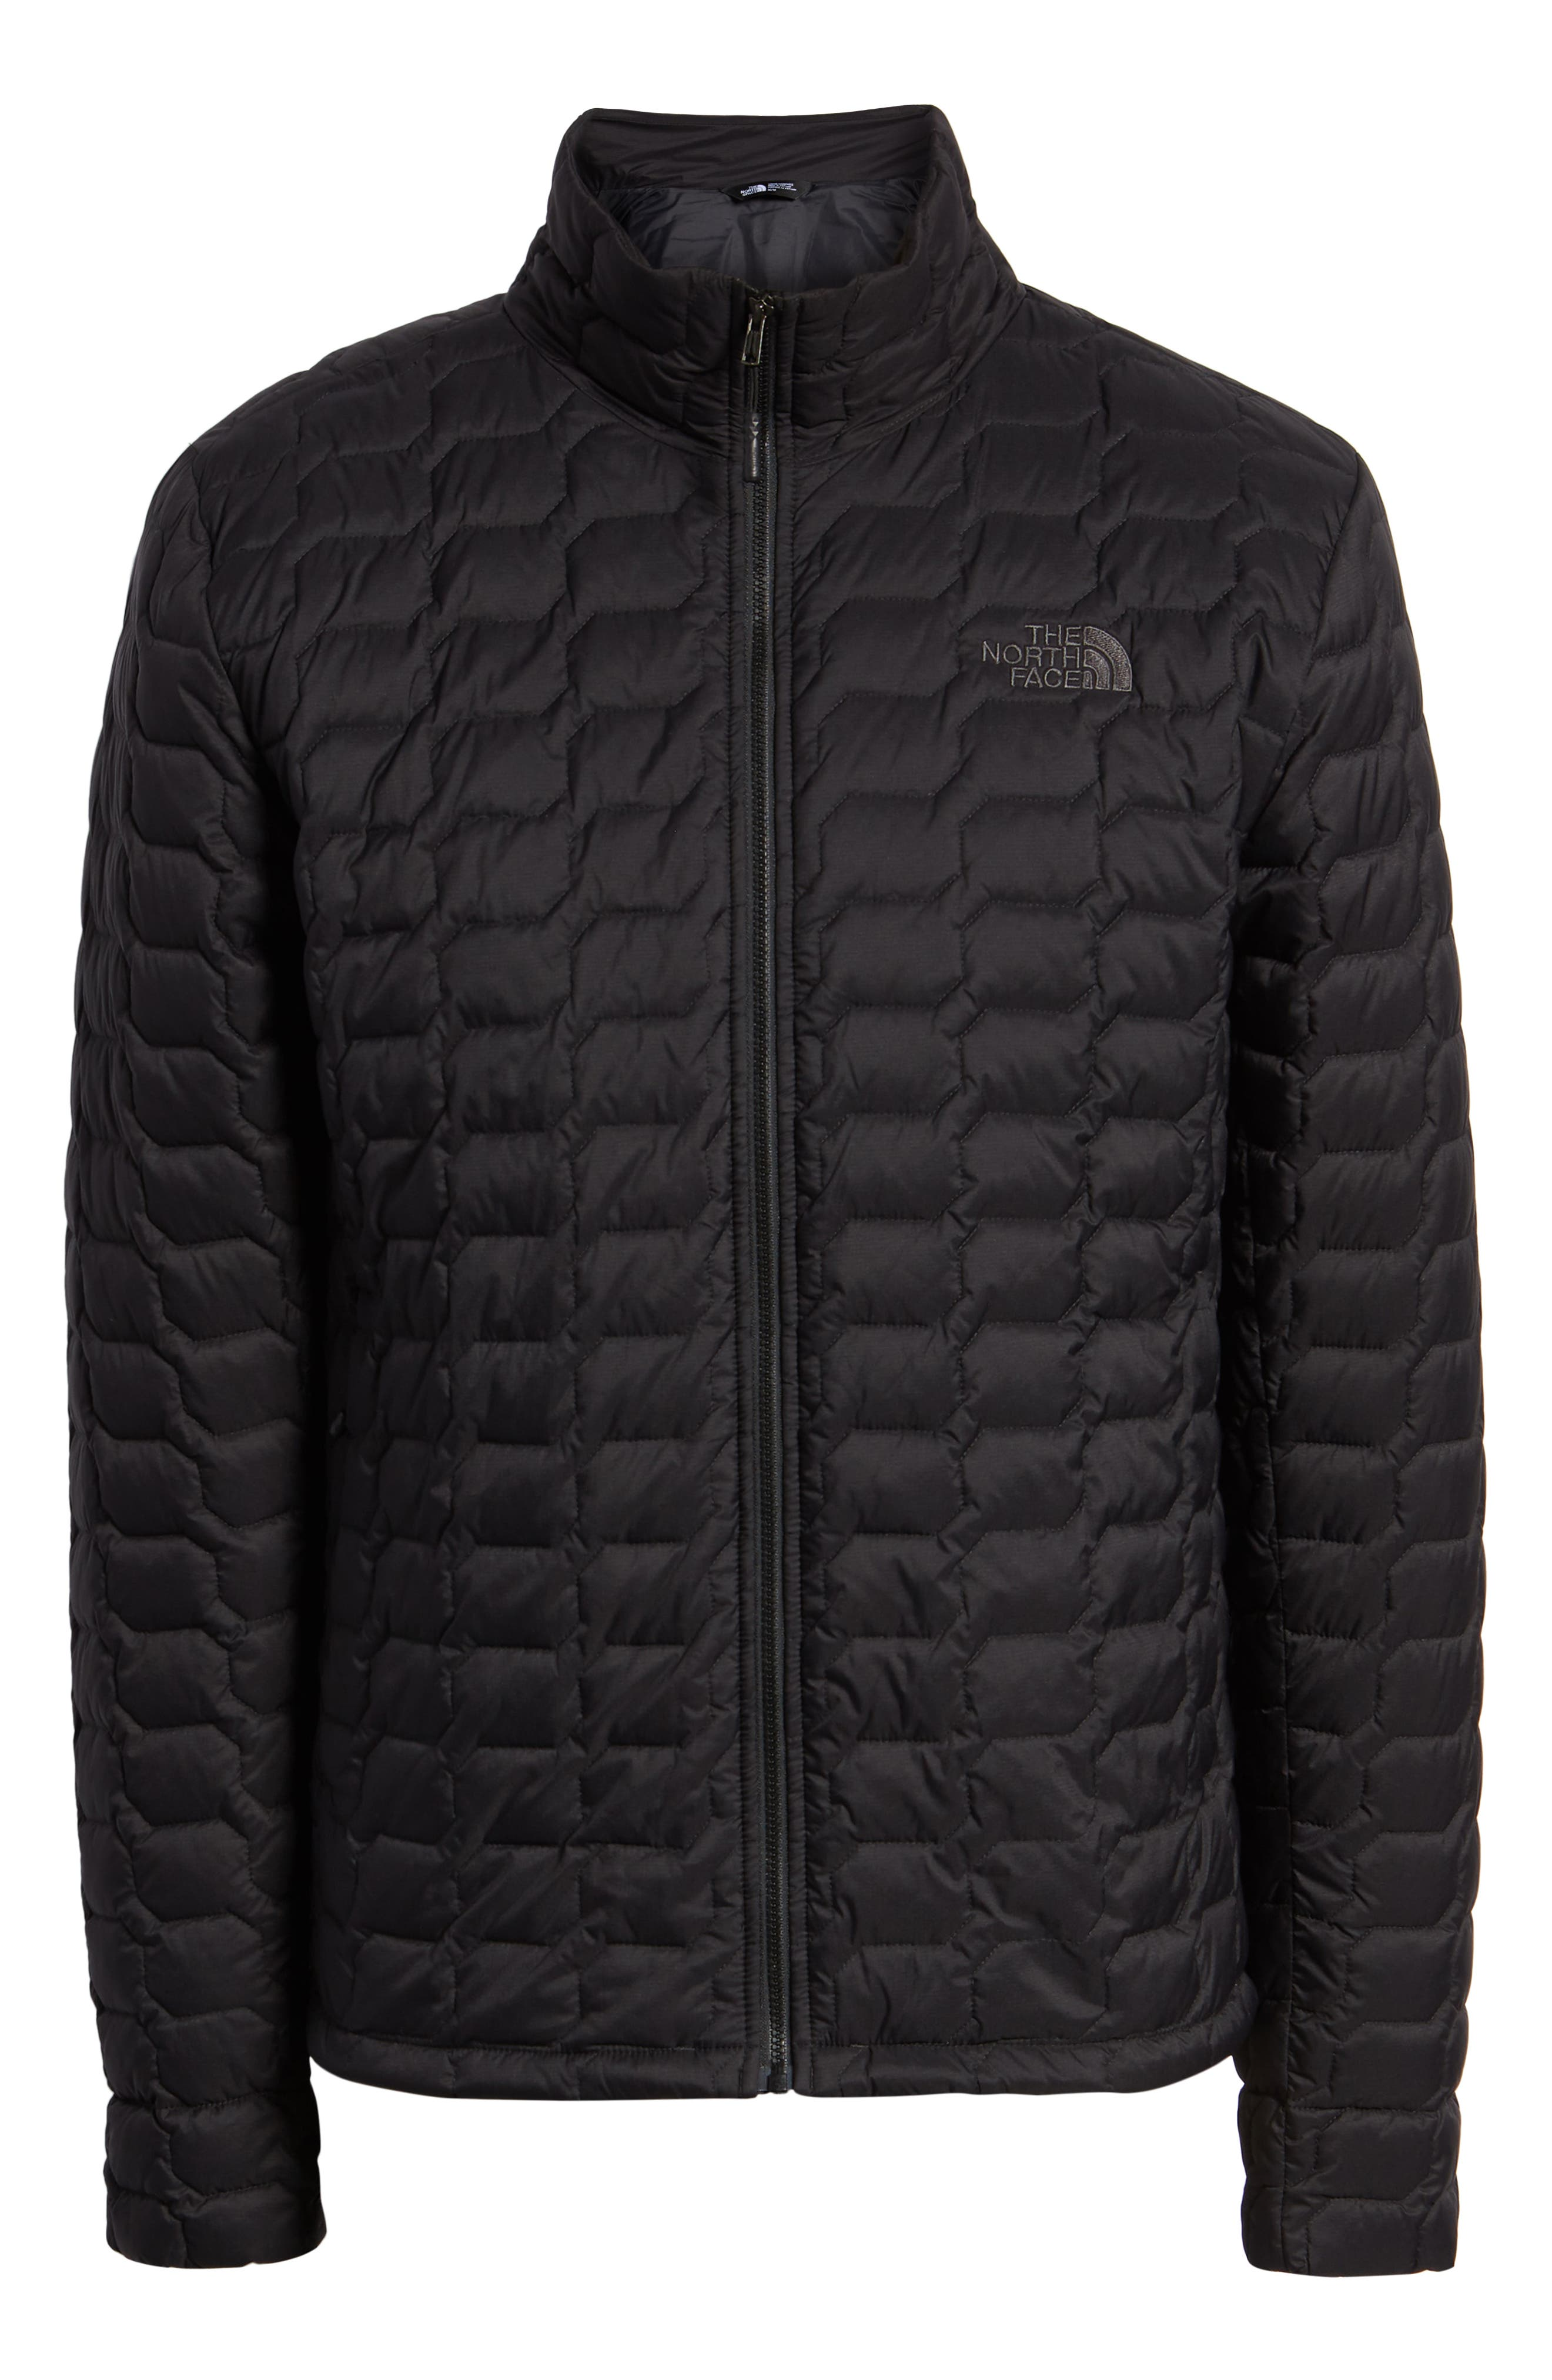 THE NORTH FACE, ThermoBall<sup>™</sup> Jacket, Alternate thumbnail 6, color, 001